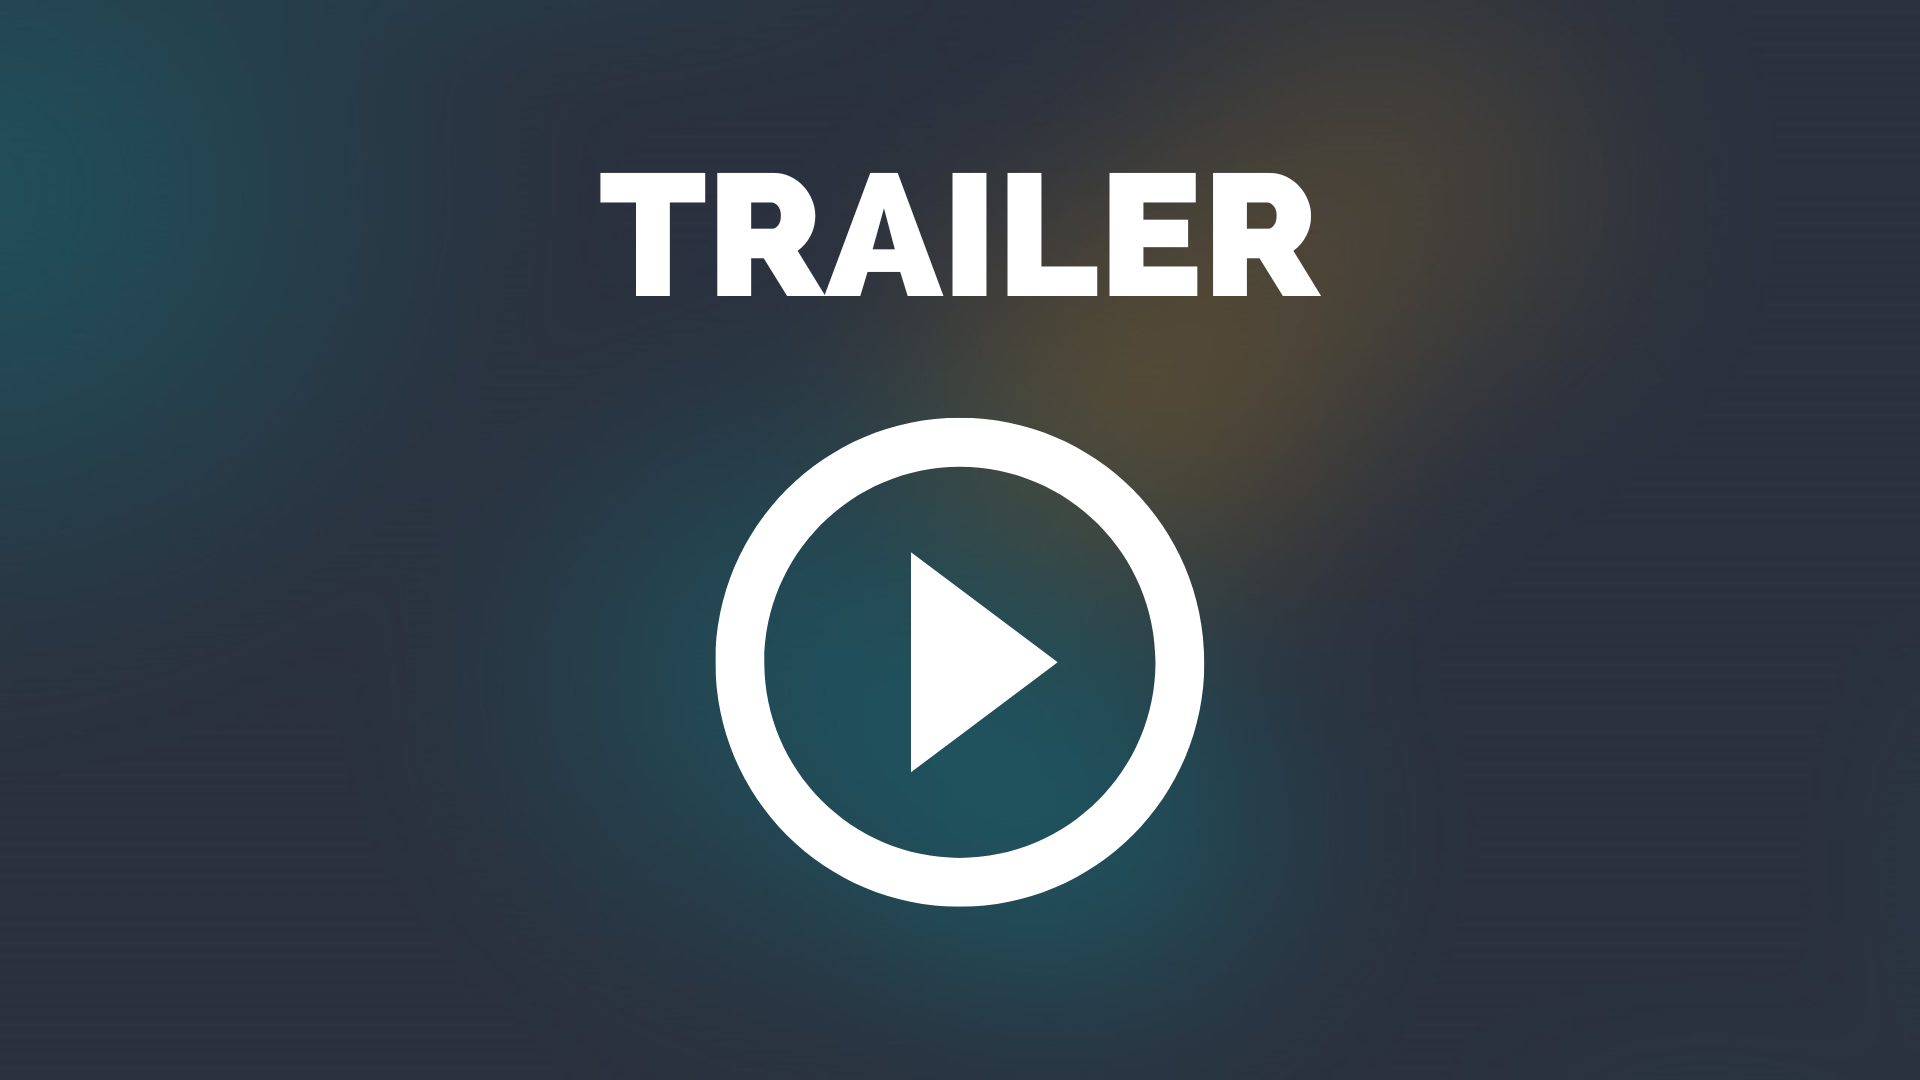 Product trailer